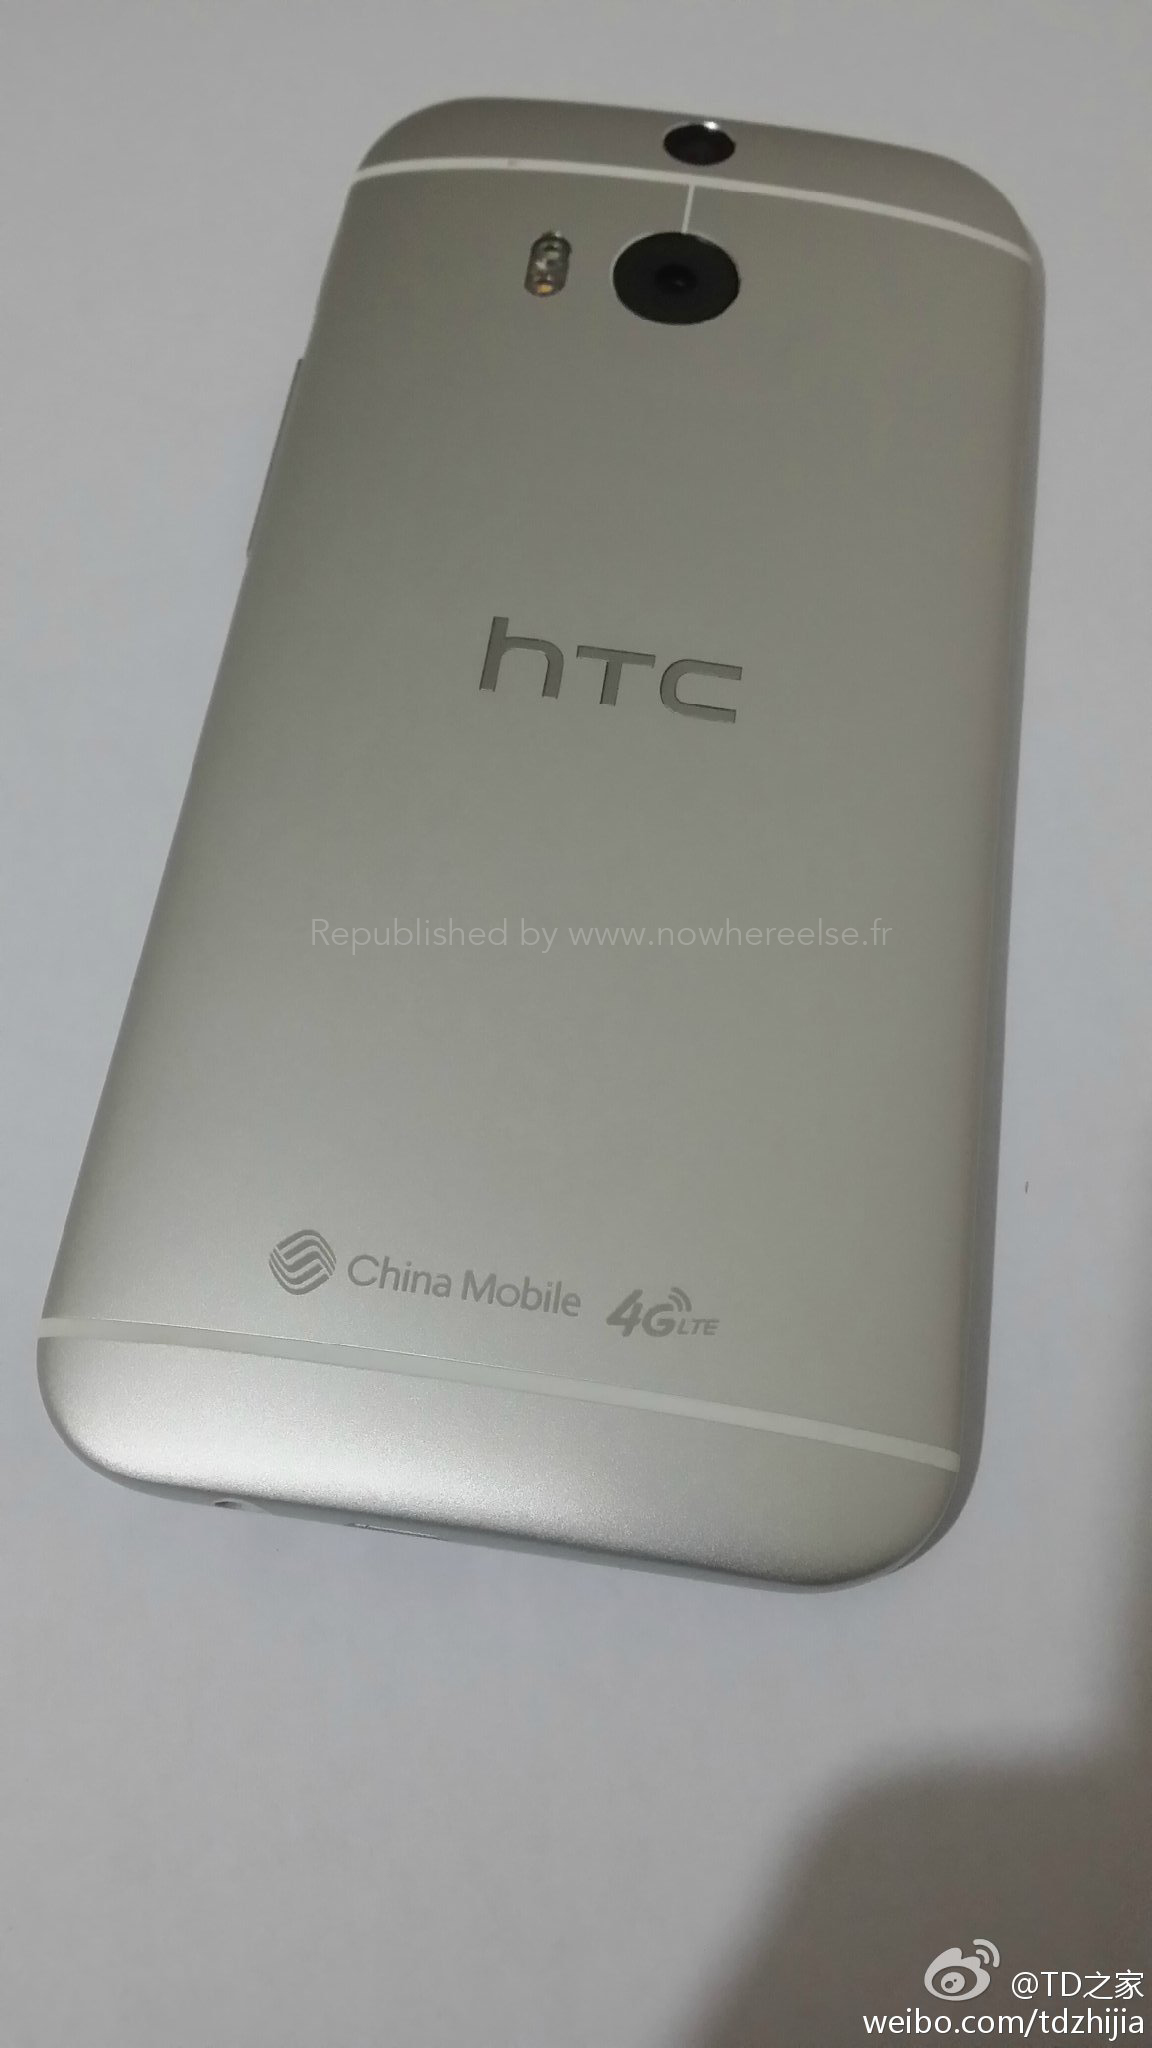 New HTC One 2014 Leaked Photos Show Phone from Multiple Angles